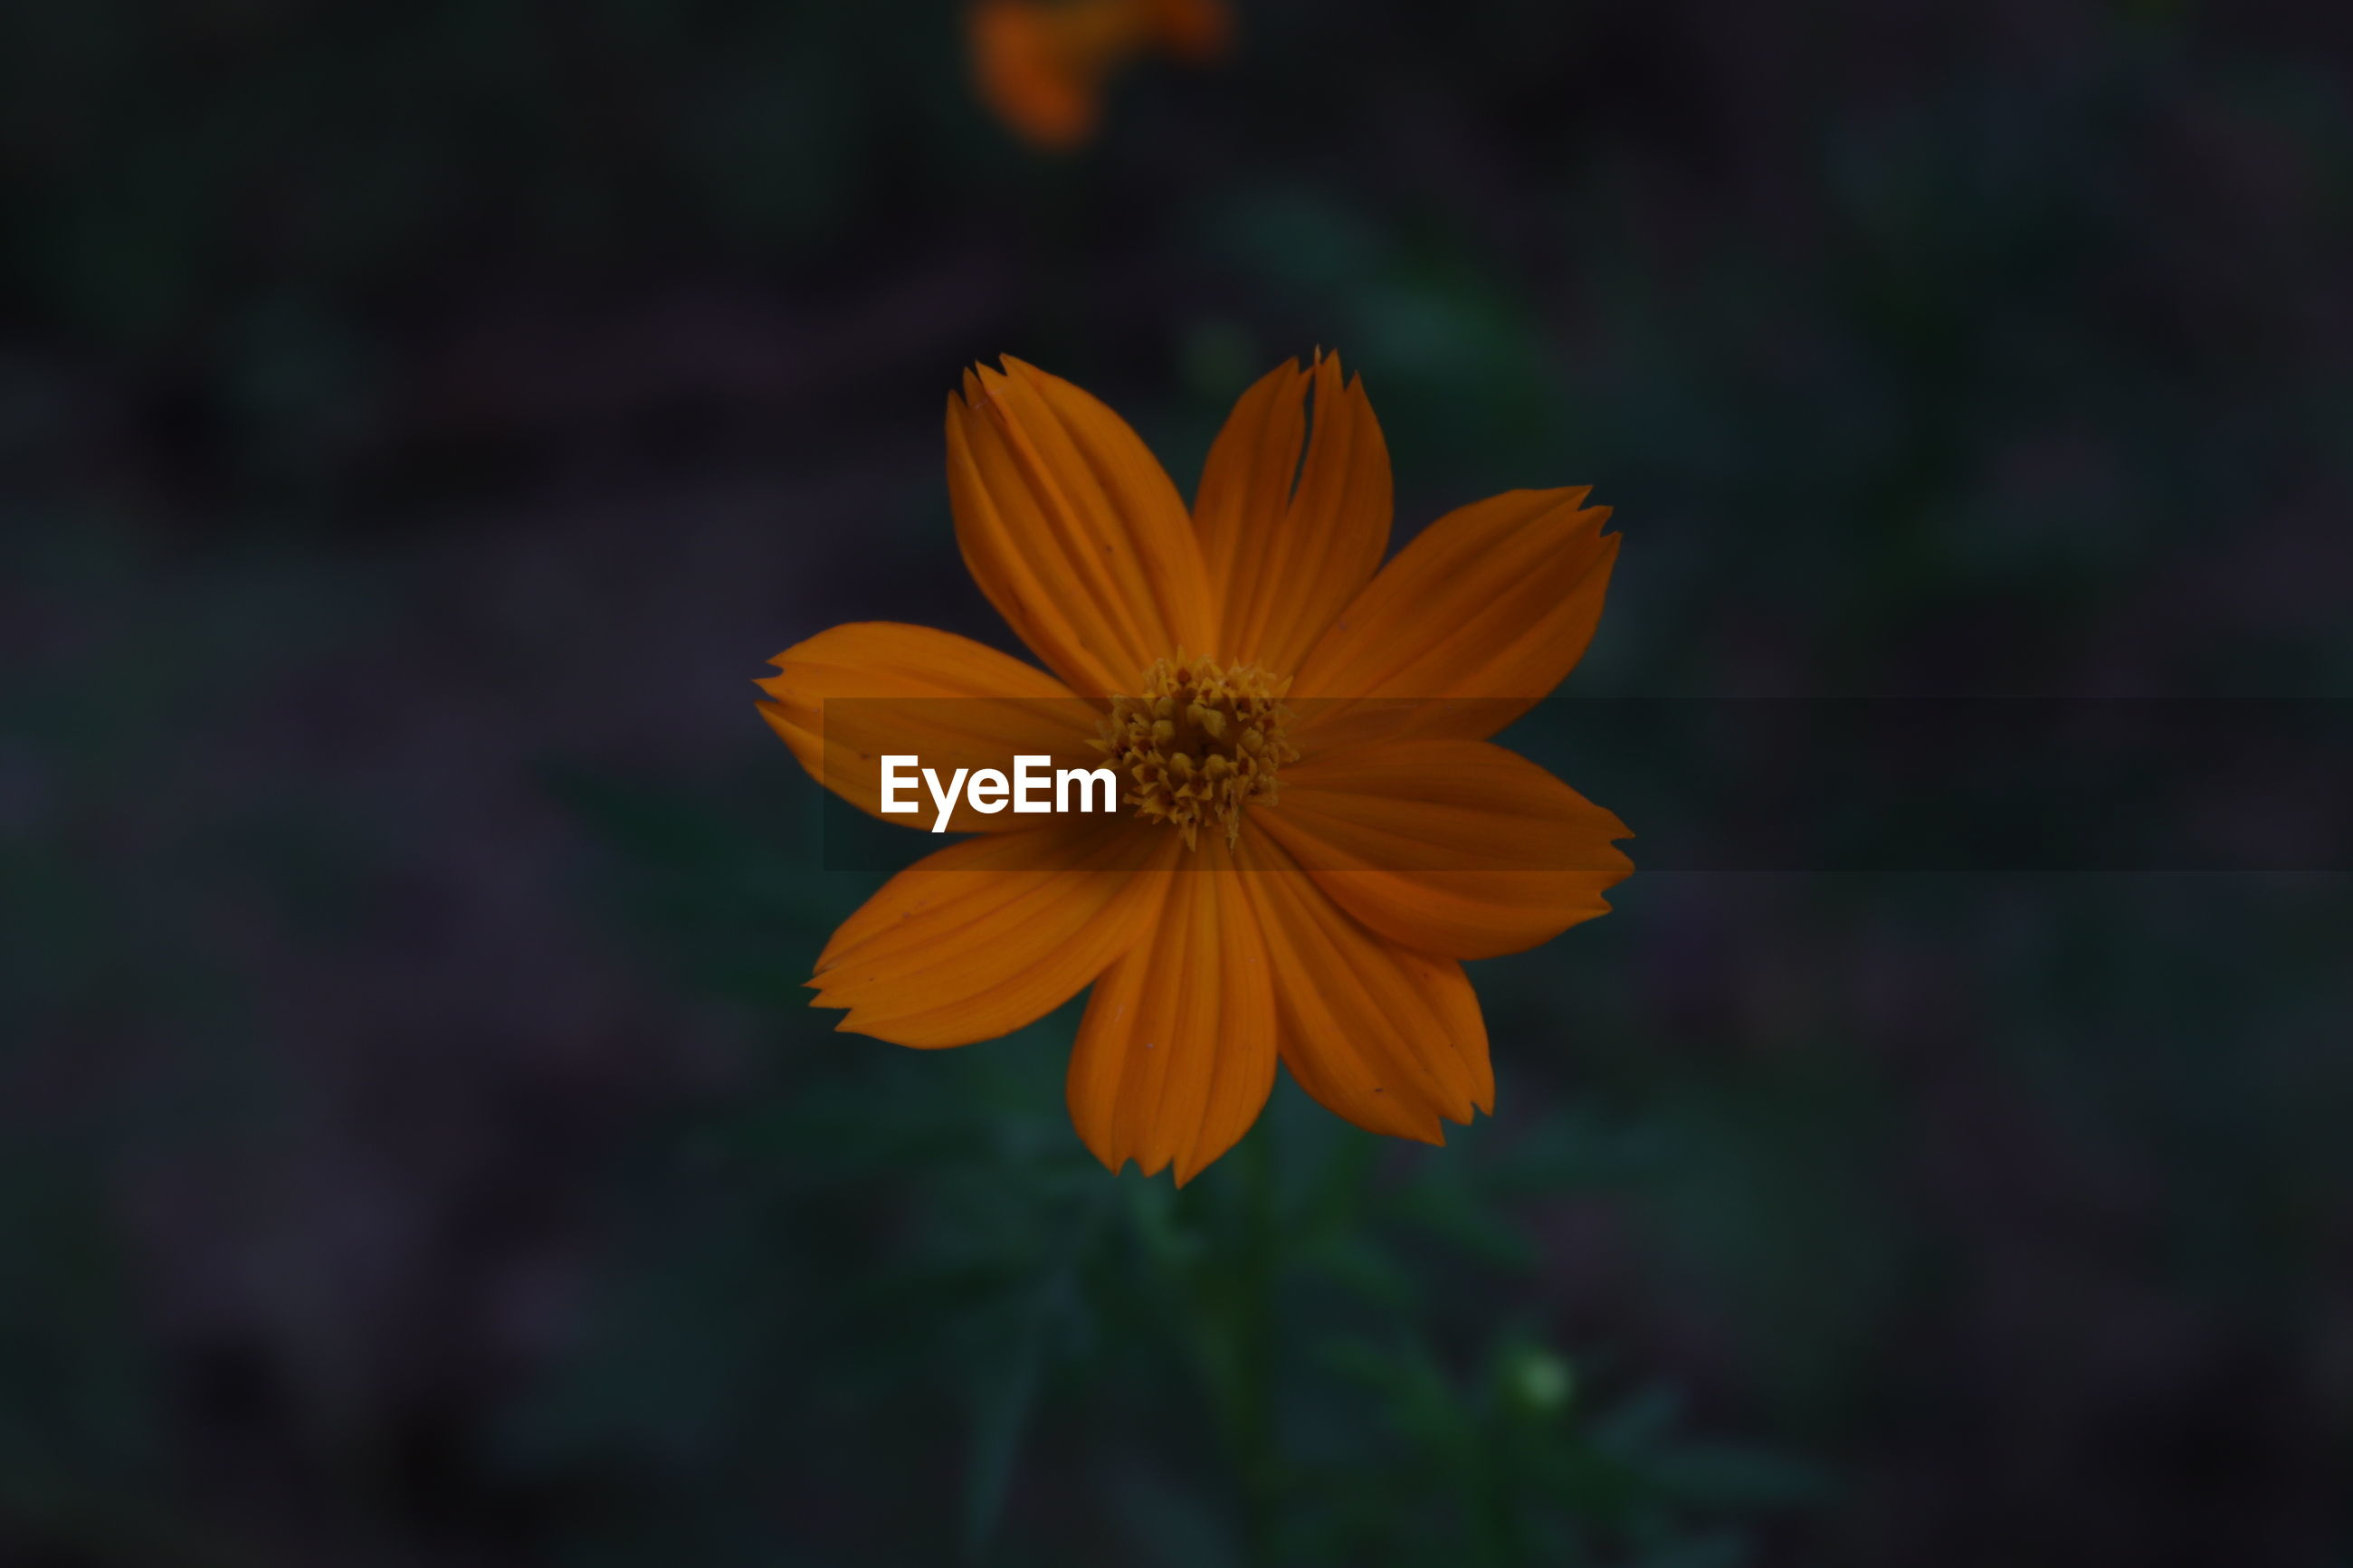 CLOSE-UP OF ORANGE COSMOS FLOWER AGAINST BLURRED BACKGROUND